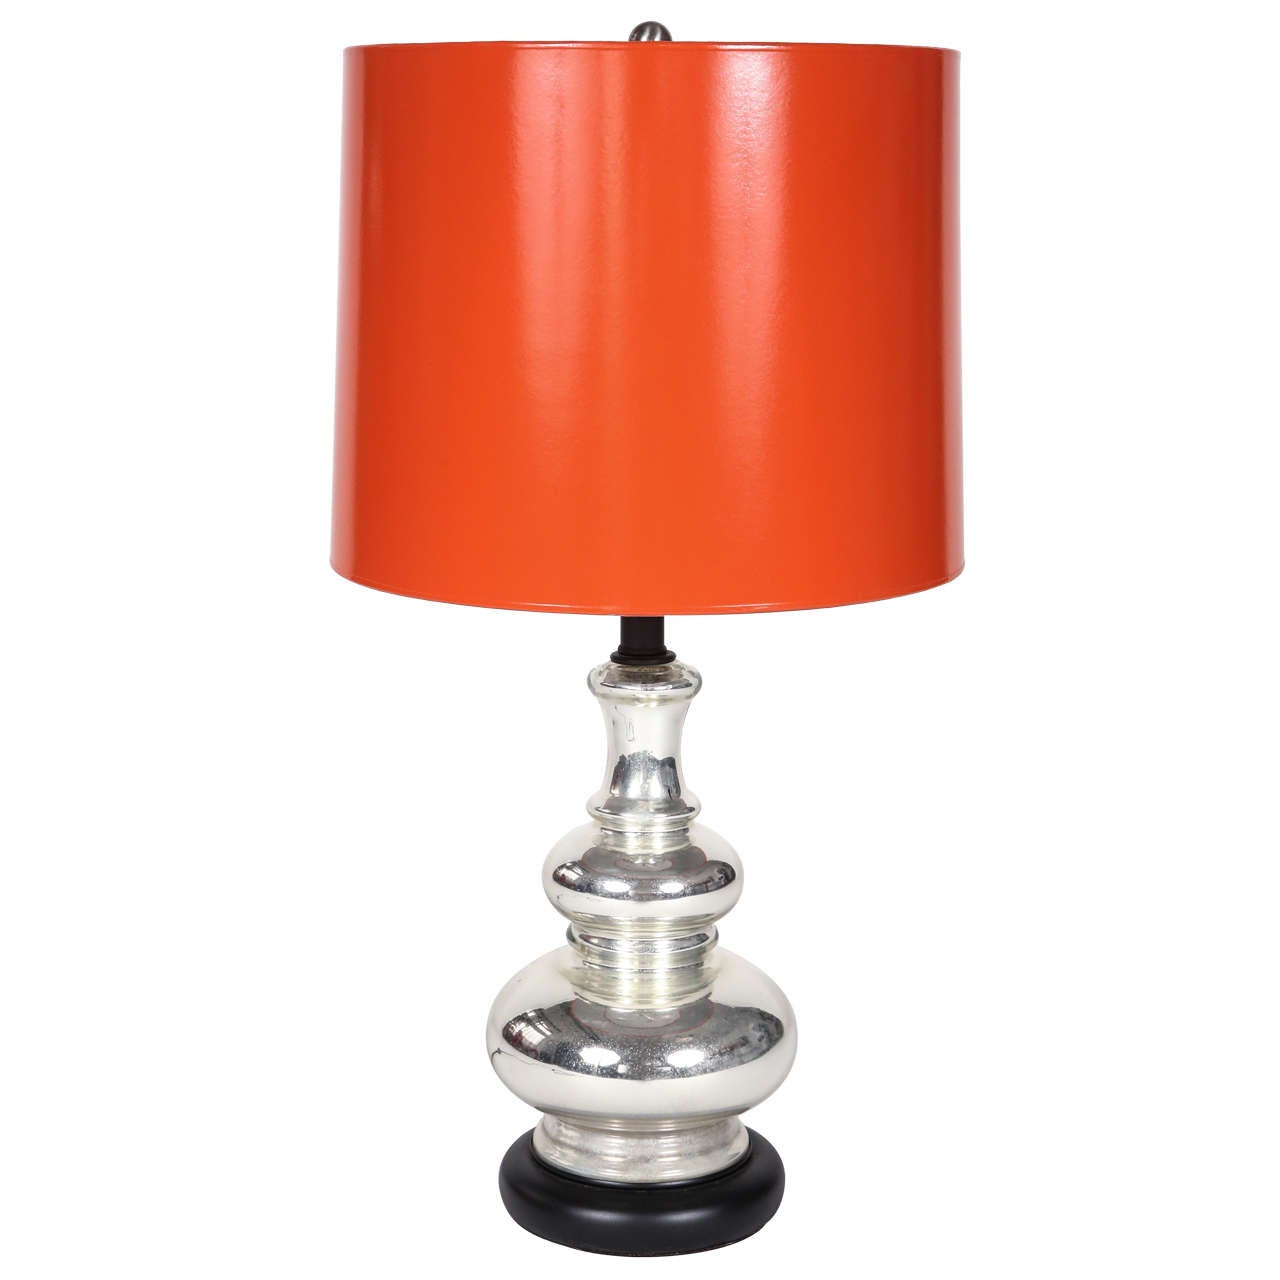 Vintage Tiered Mercury Glass Lamp With Hermes Shade At 1stdibs